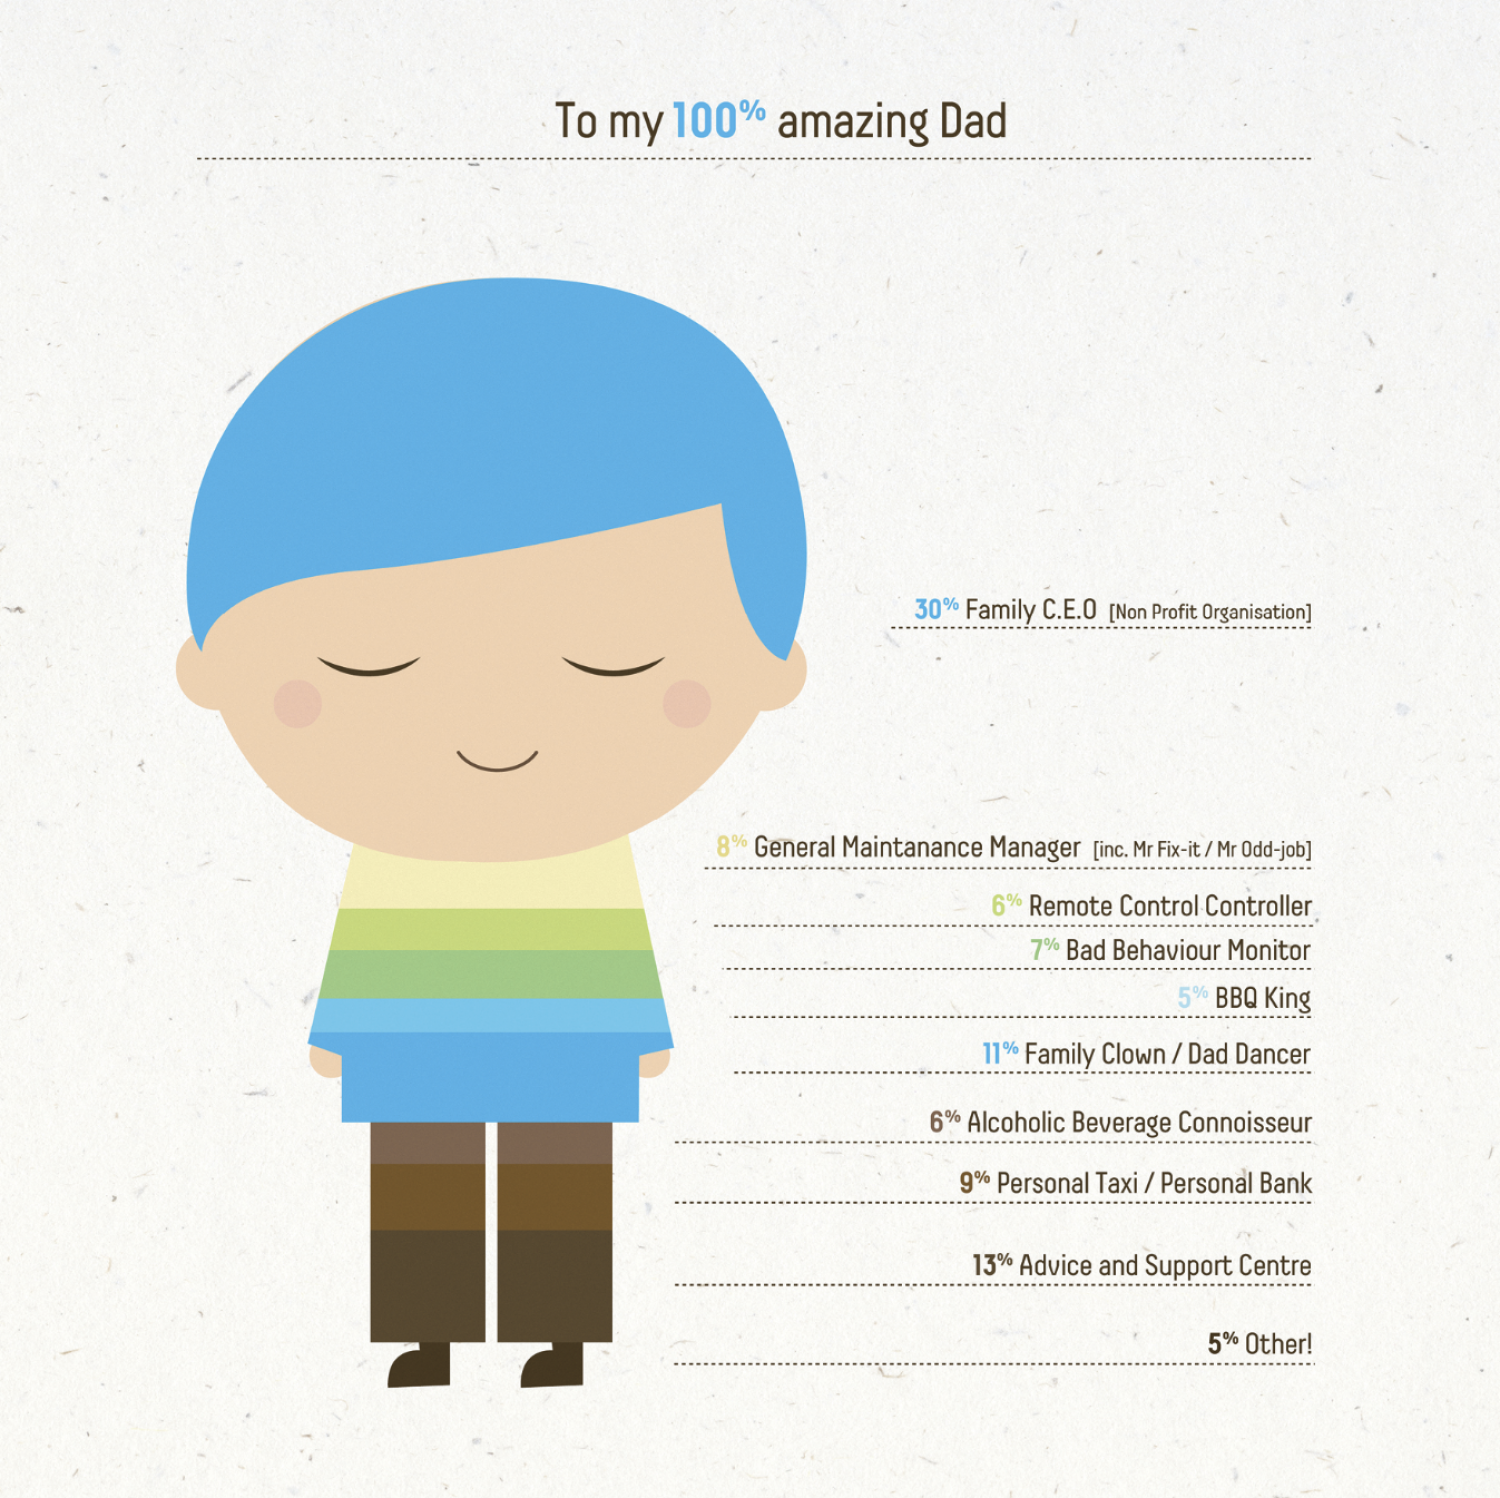 My 100% amazing dad Infographic